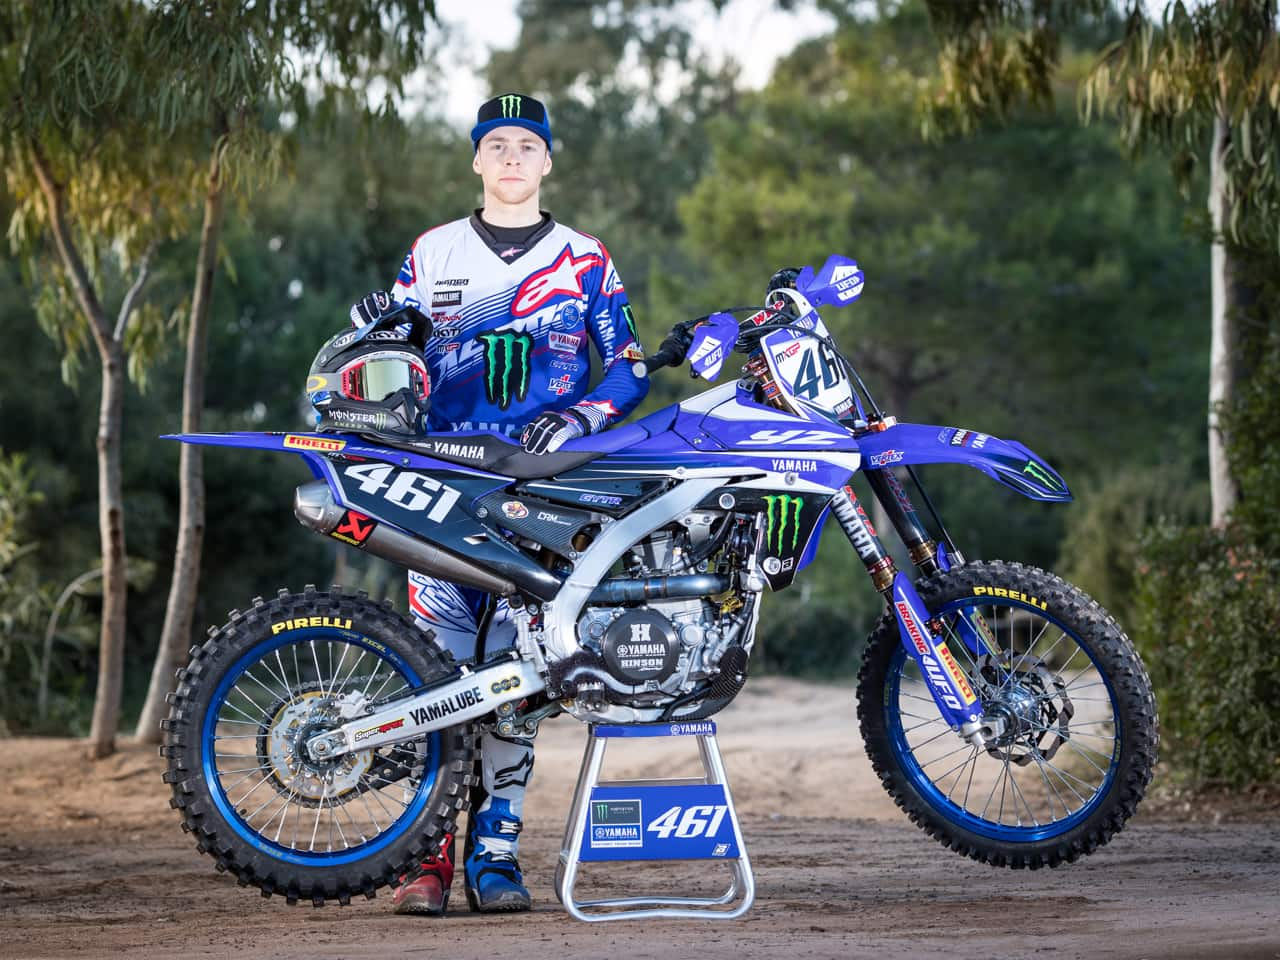 First Look 2017 Monster Energy Factory Yamaha Mxgp Team